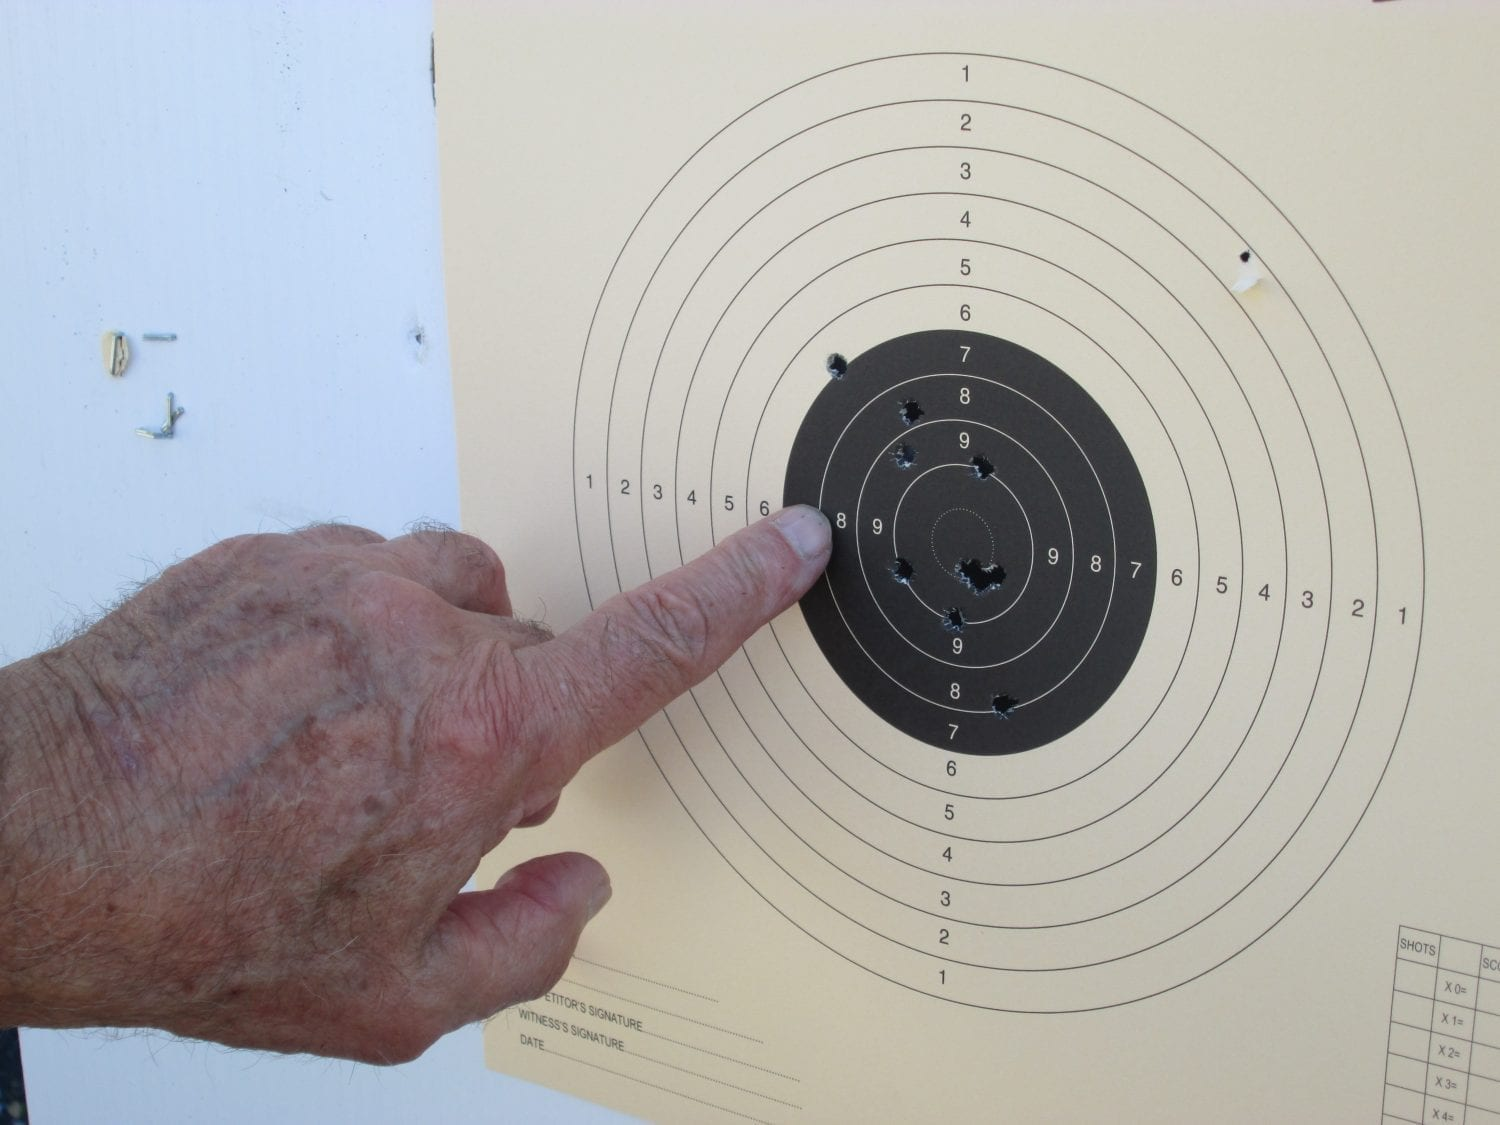 Target results with good grouping